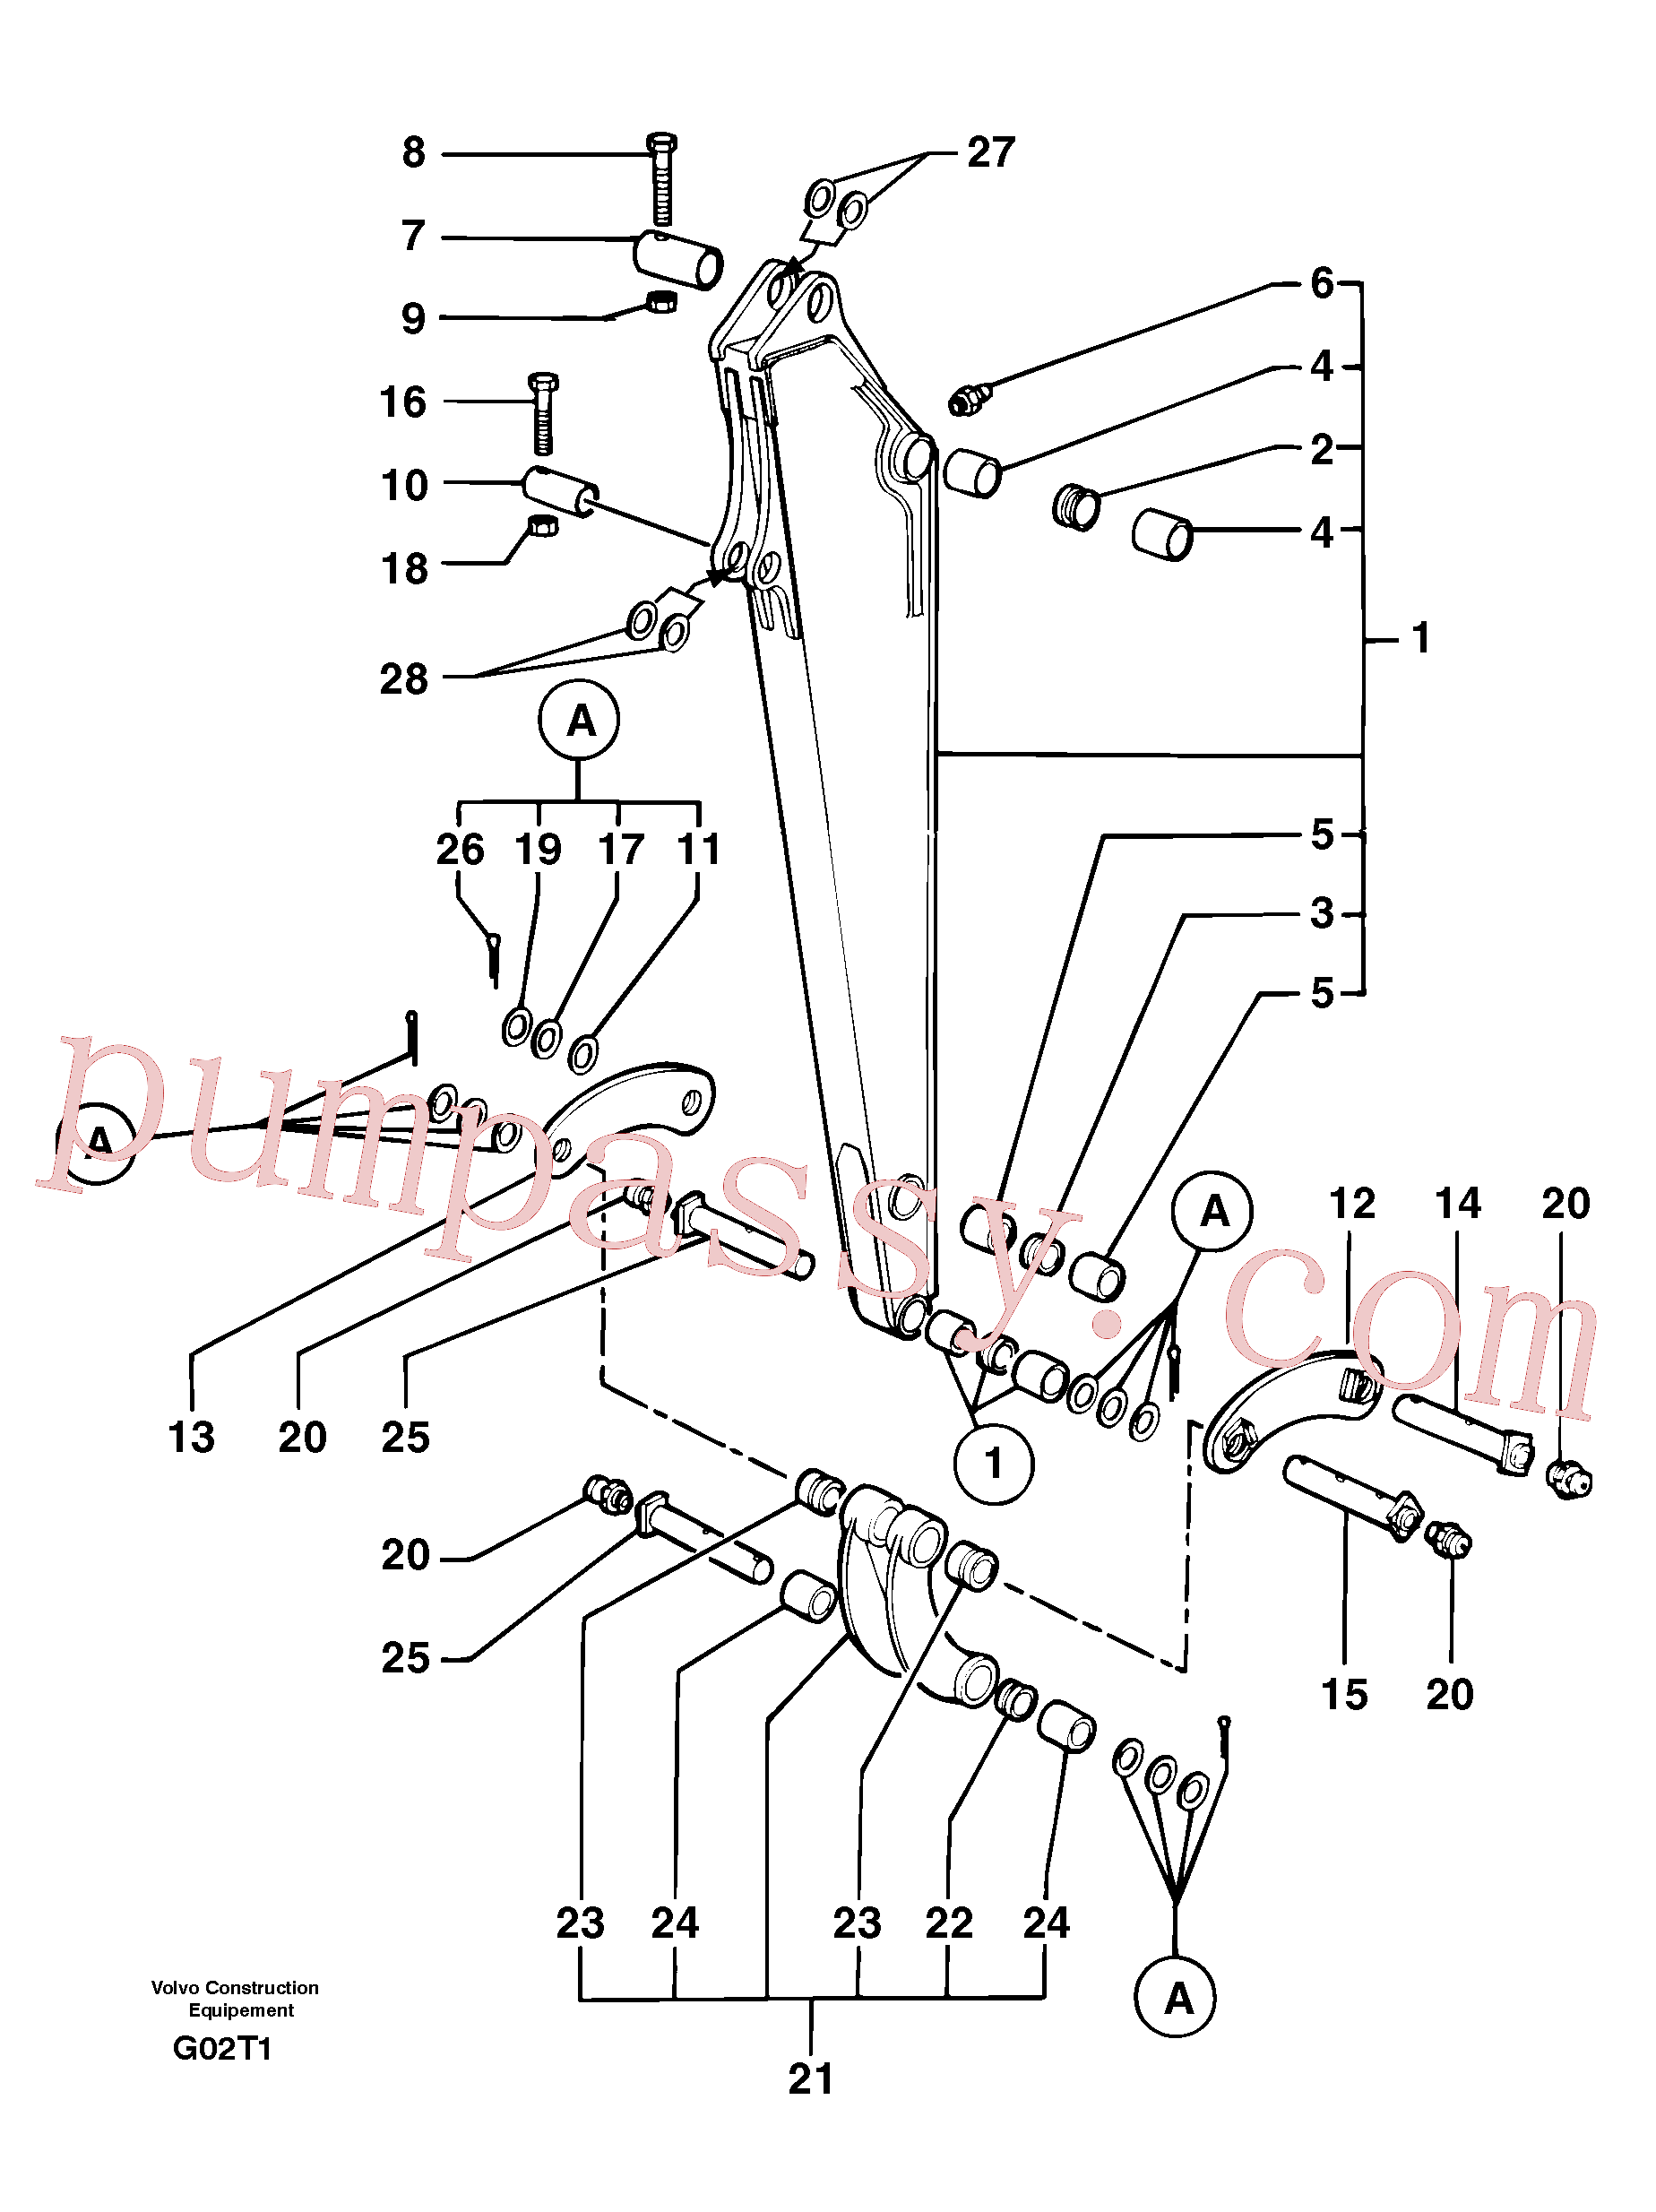 VOE11805825 for Volvo Dipper arm(G02T1 assembly)